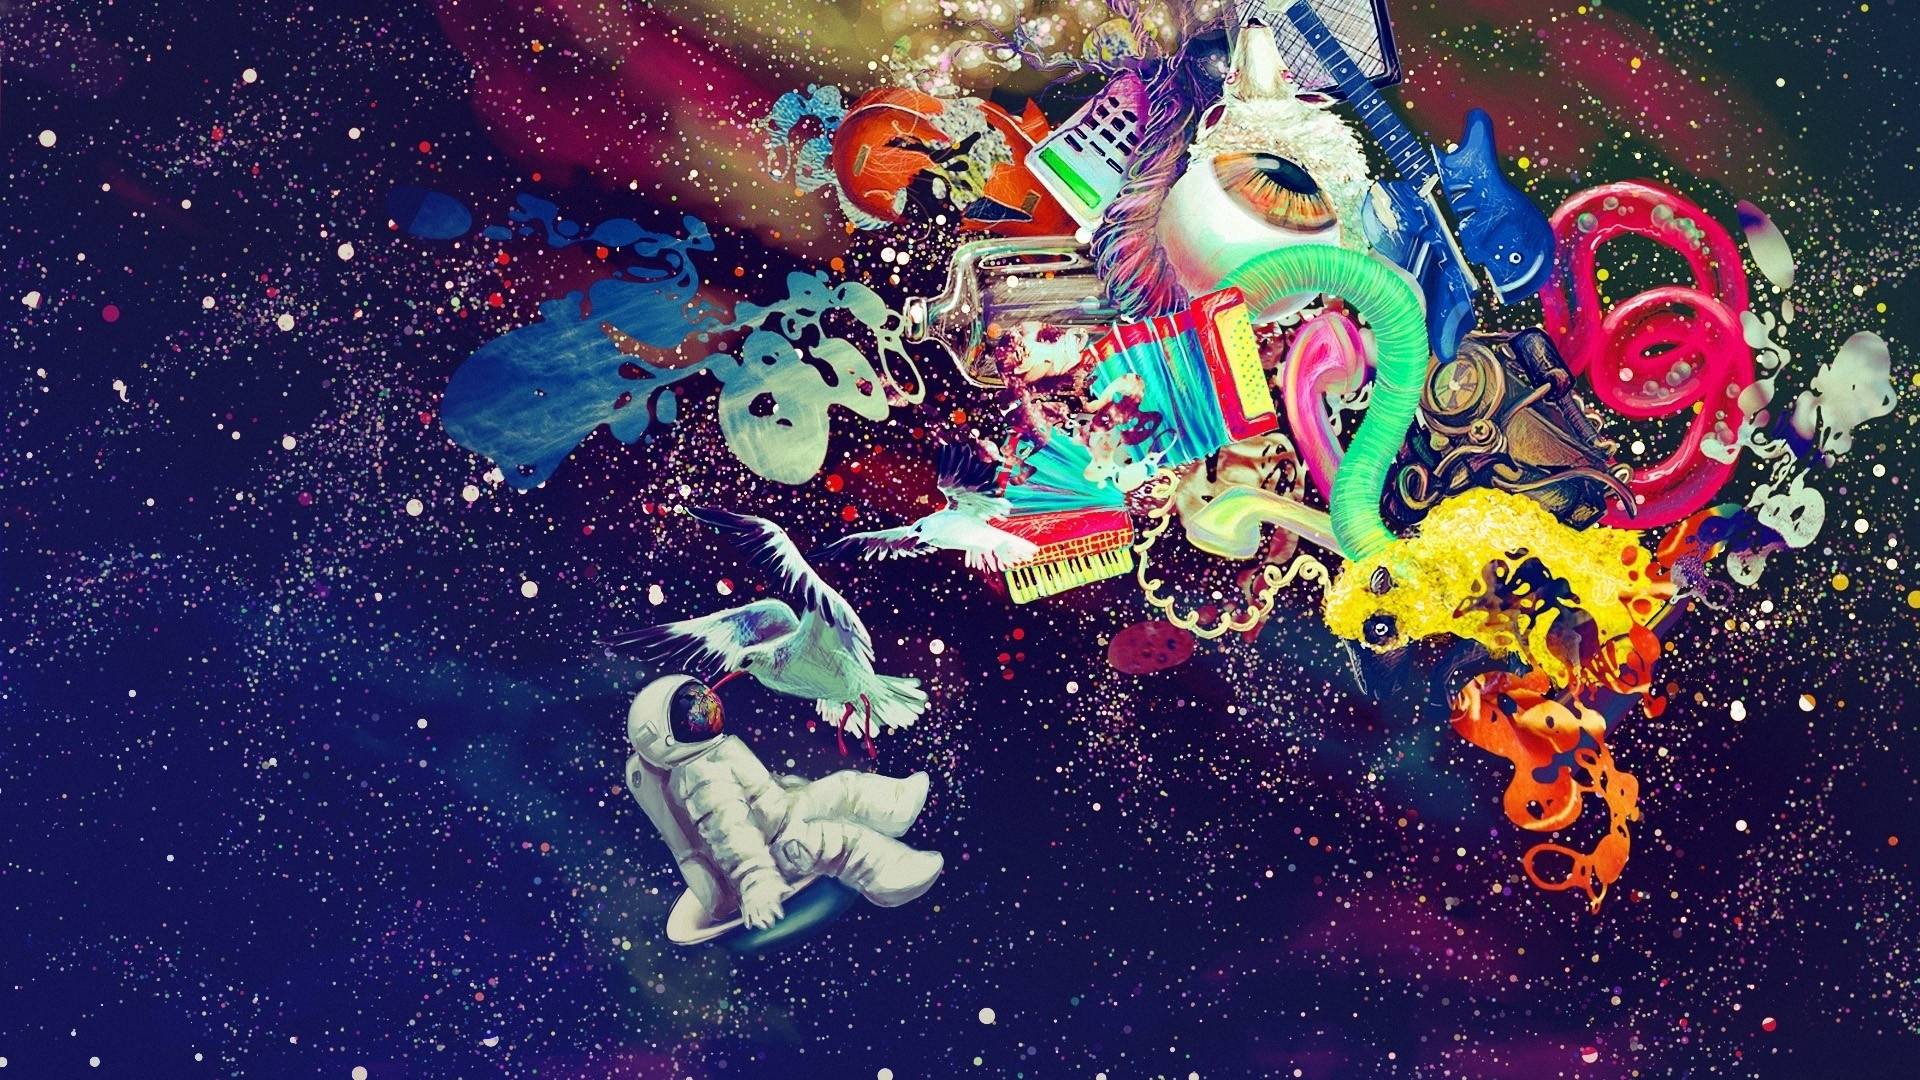 Psychedelic Full HD Wallpaper And Background Image   1920x1080   Id computer wallpaper